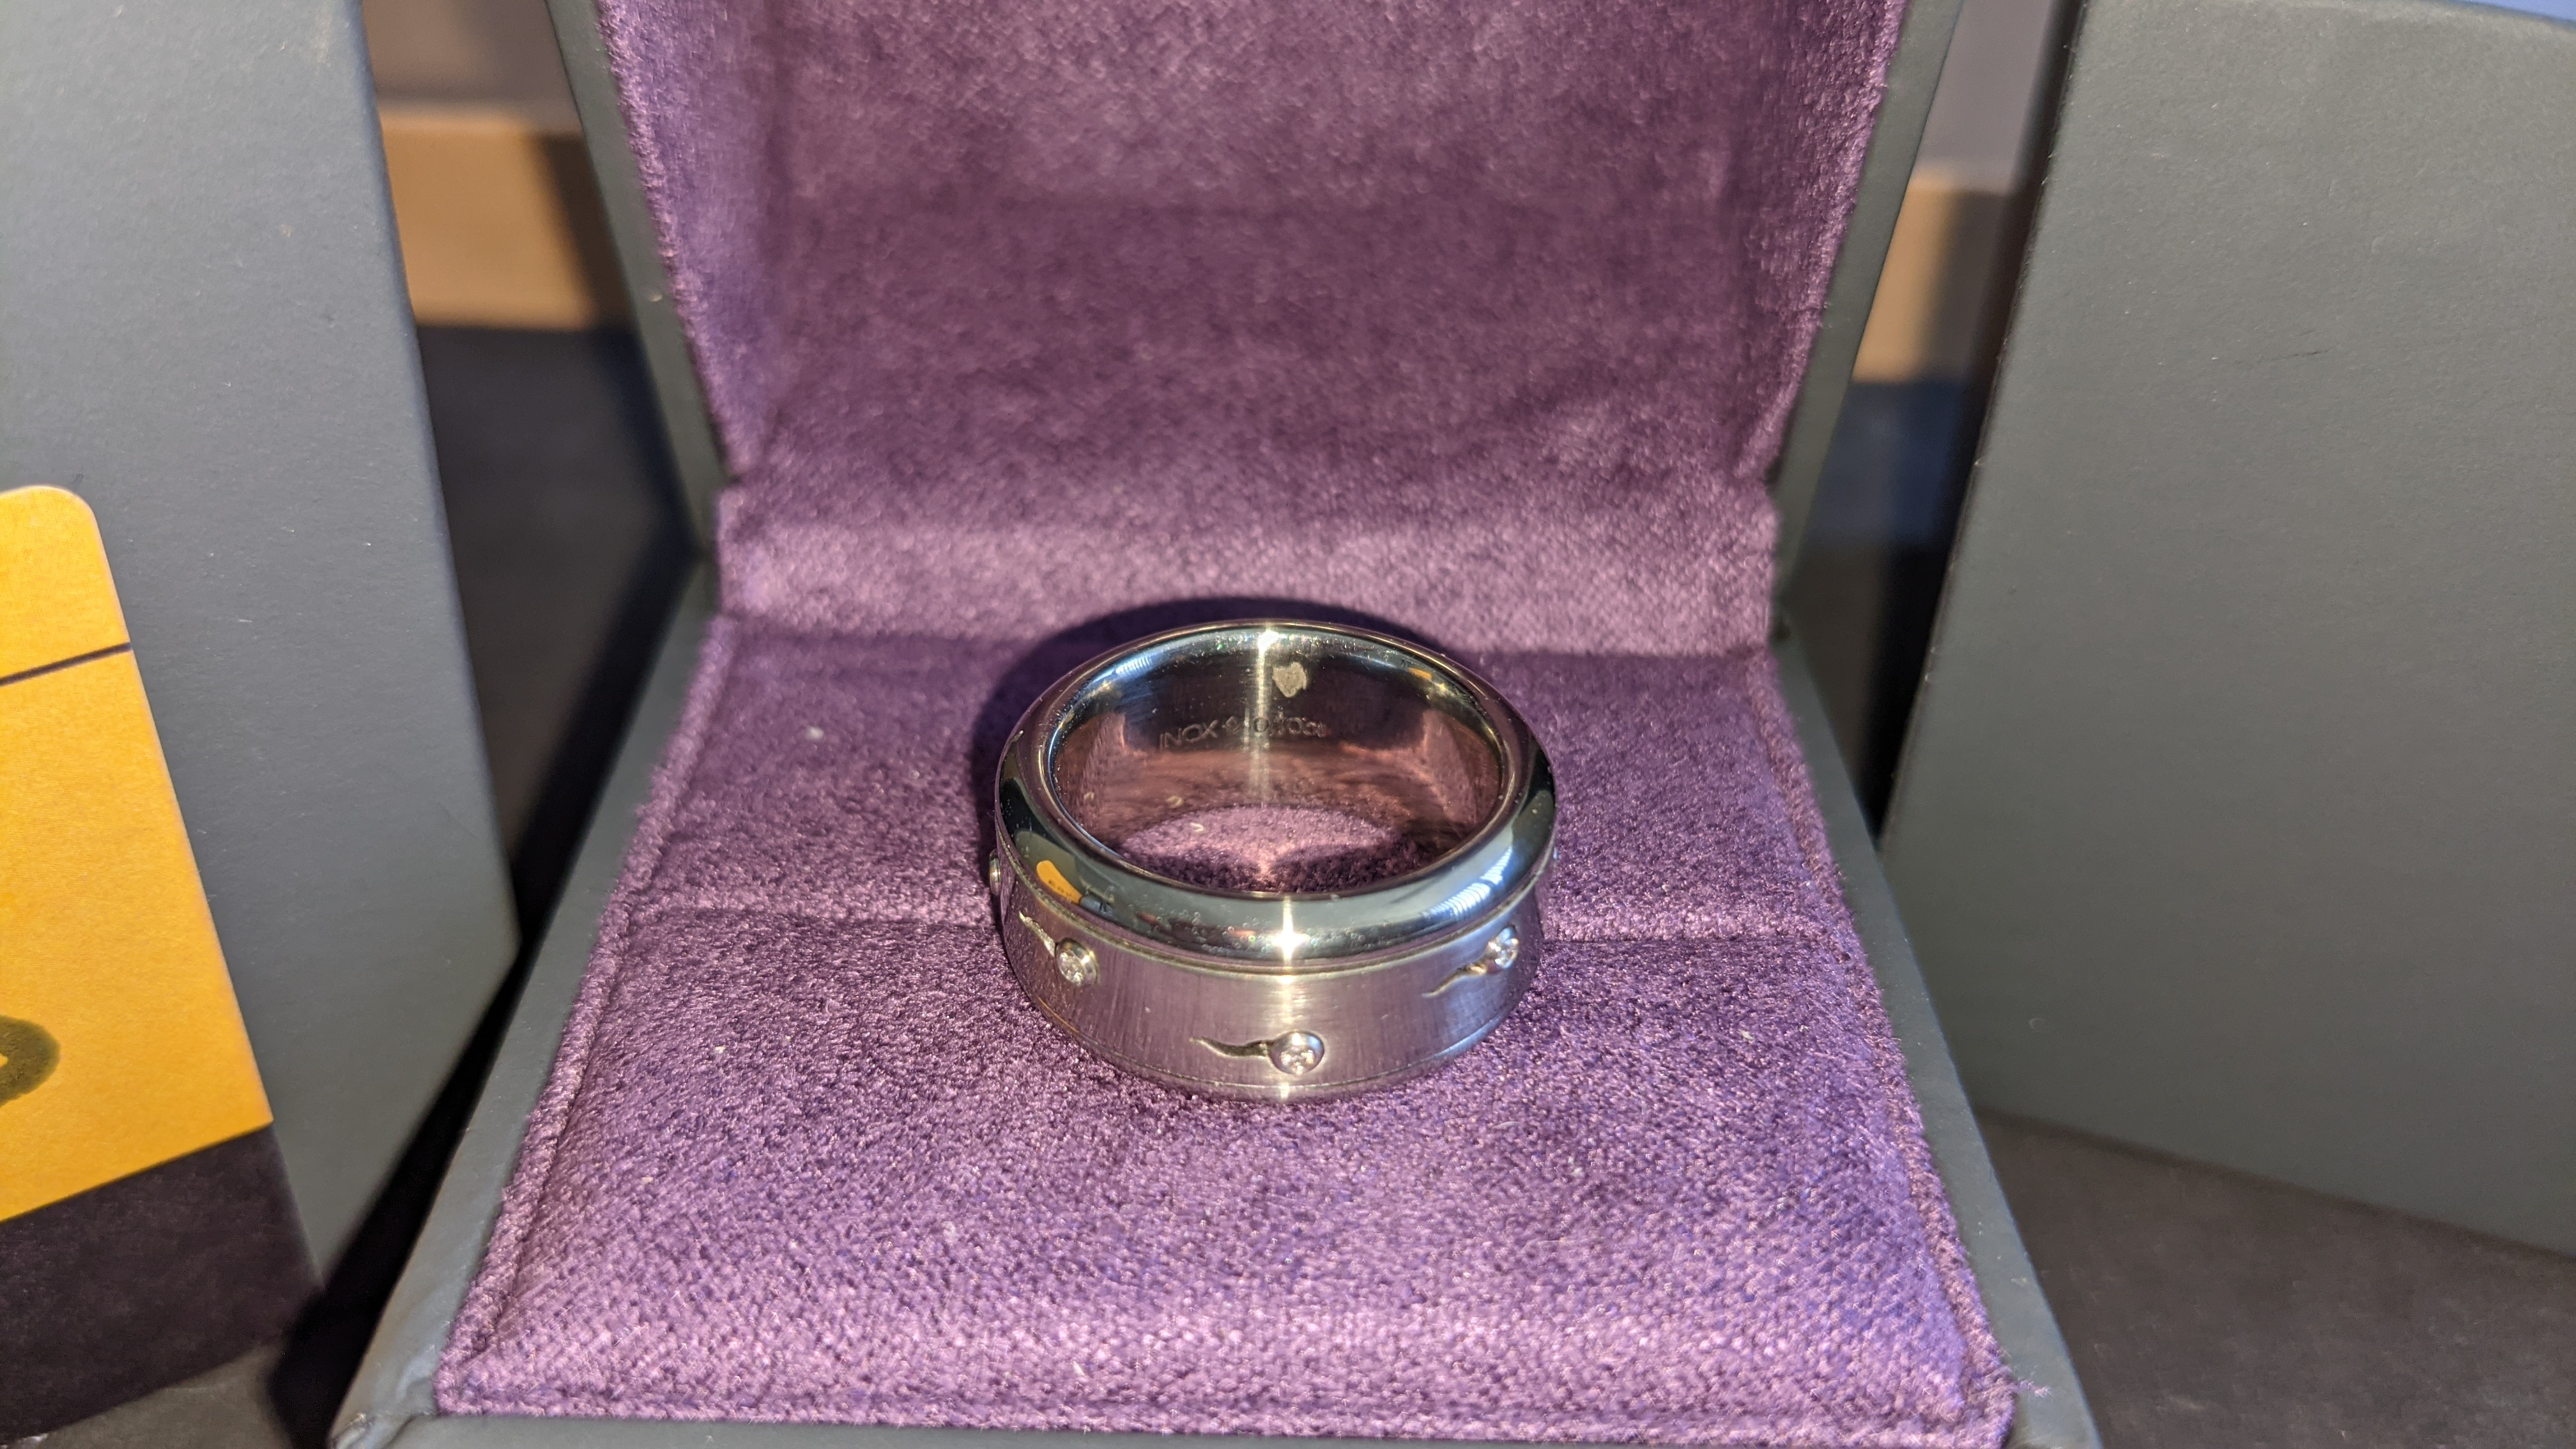 Stainless steel & diamond spin ring RRP £455 - Image 6 of 13